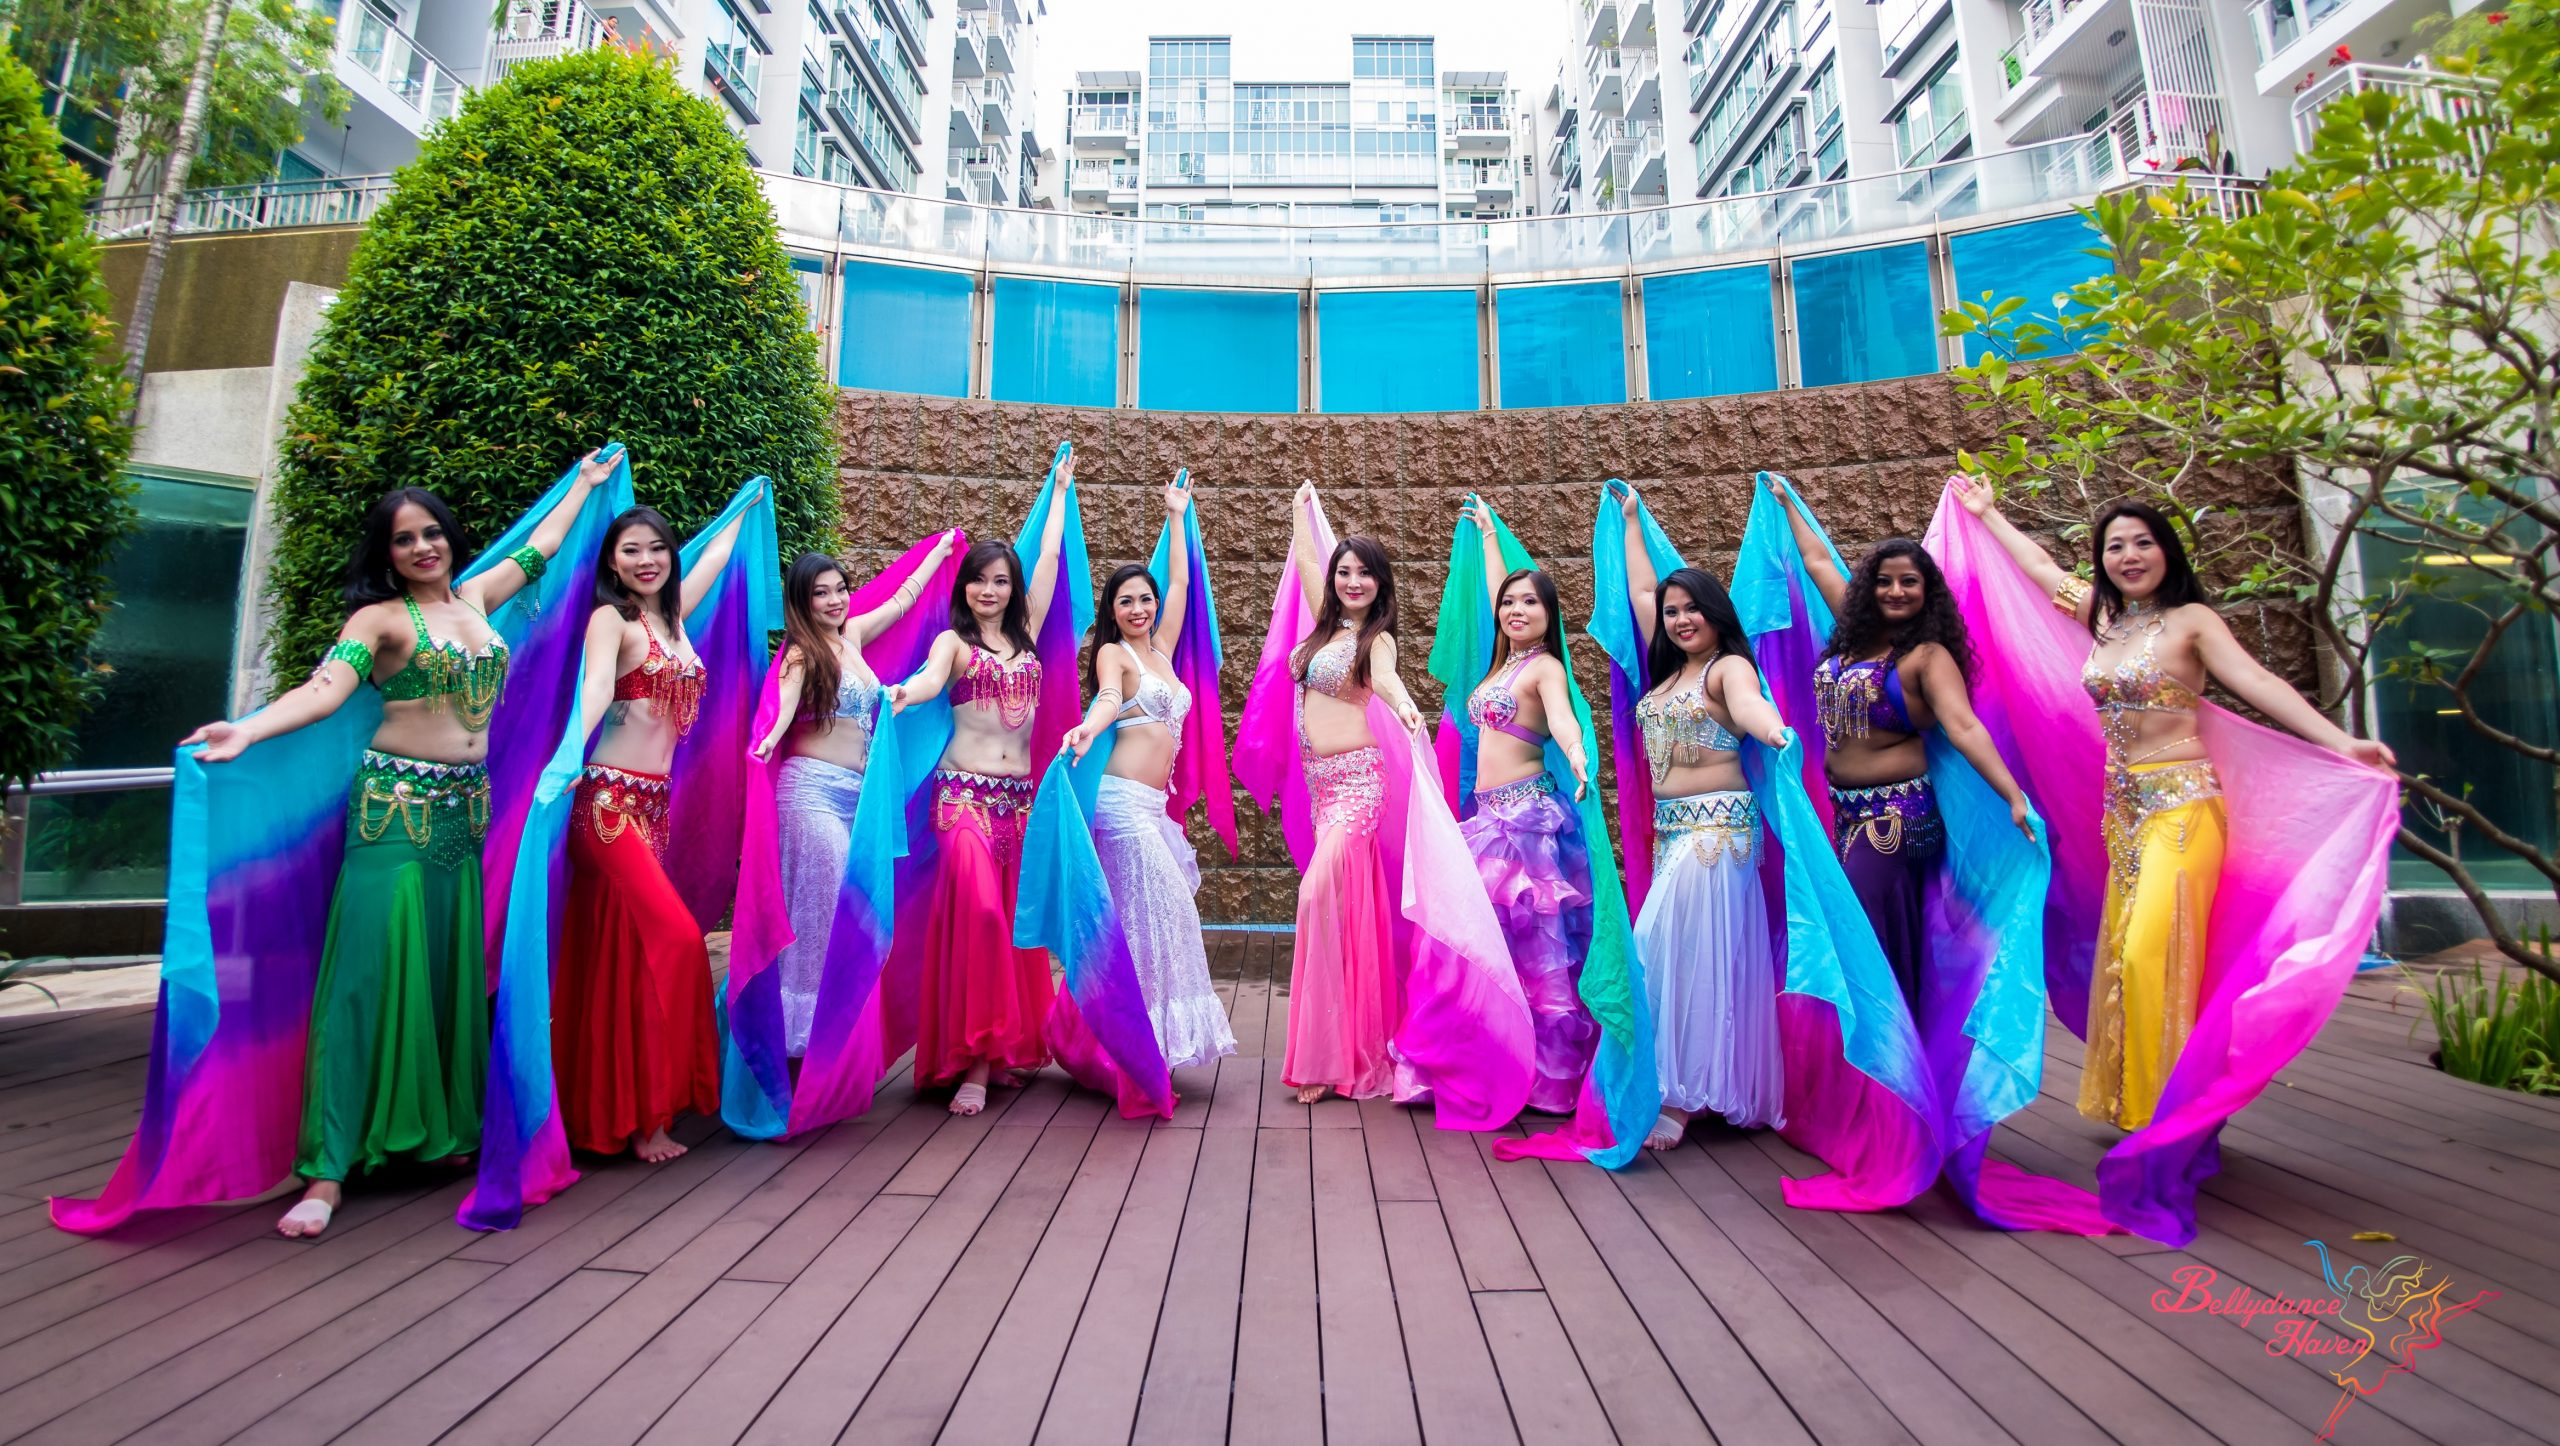 belly dancers in group 3